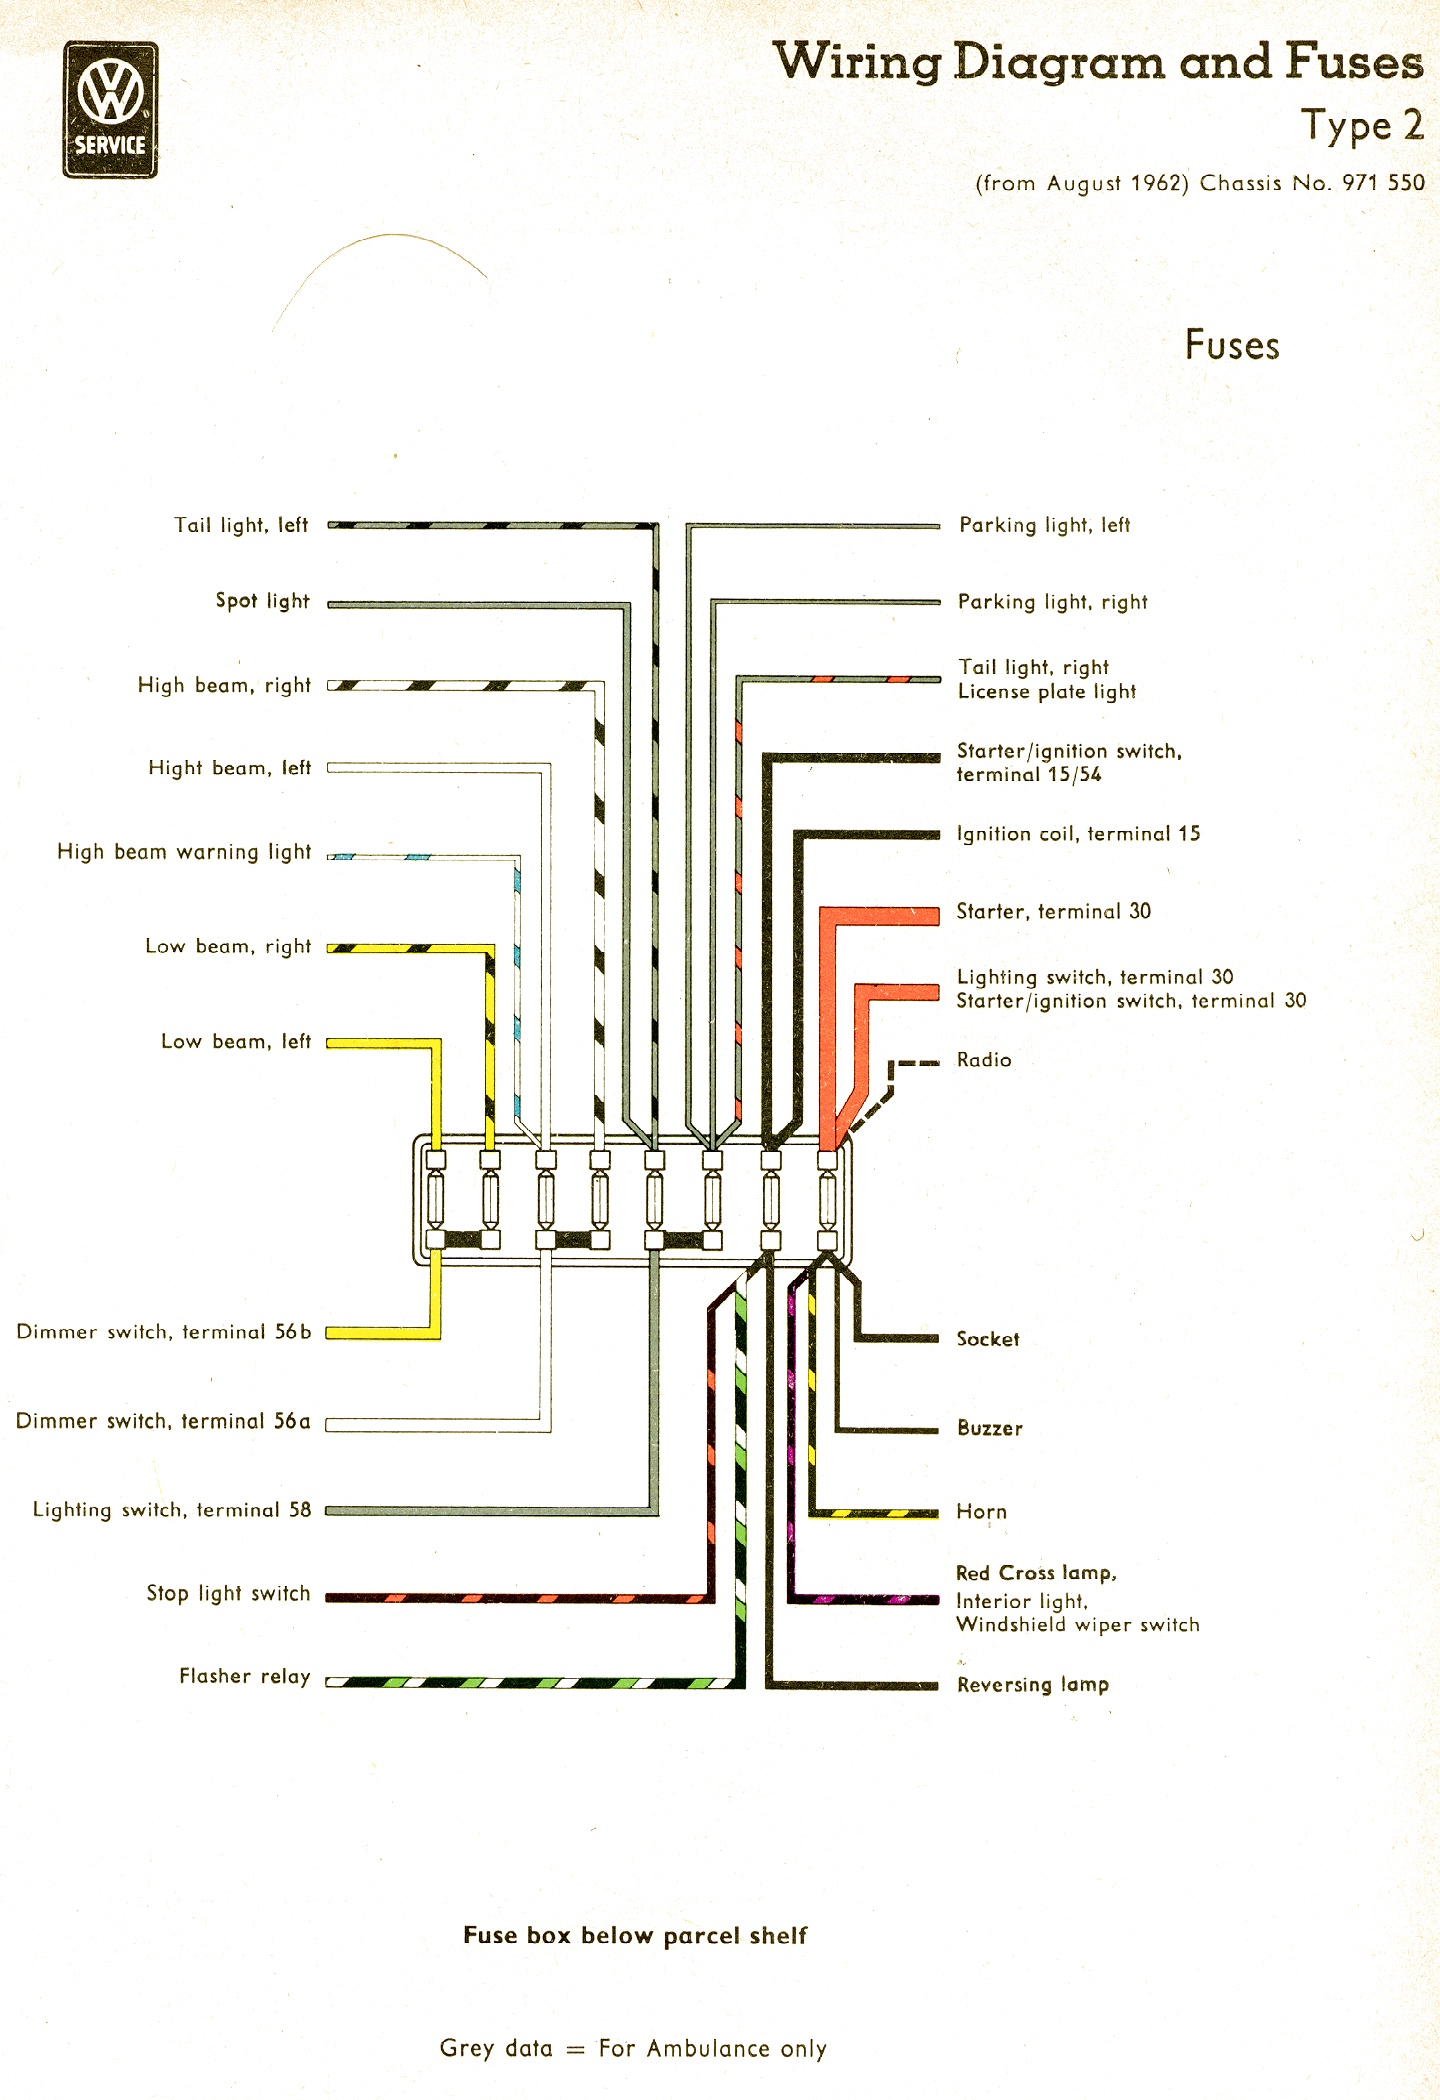 1986 vw golf fuse box diagram - 1951 plymouth wiring diagram - vw -t5.losdol2.jeanjaures37.fr  wiring diagram